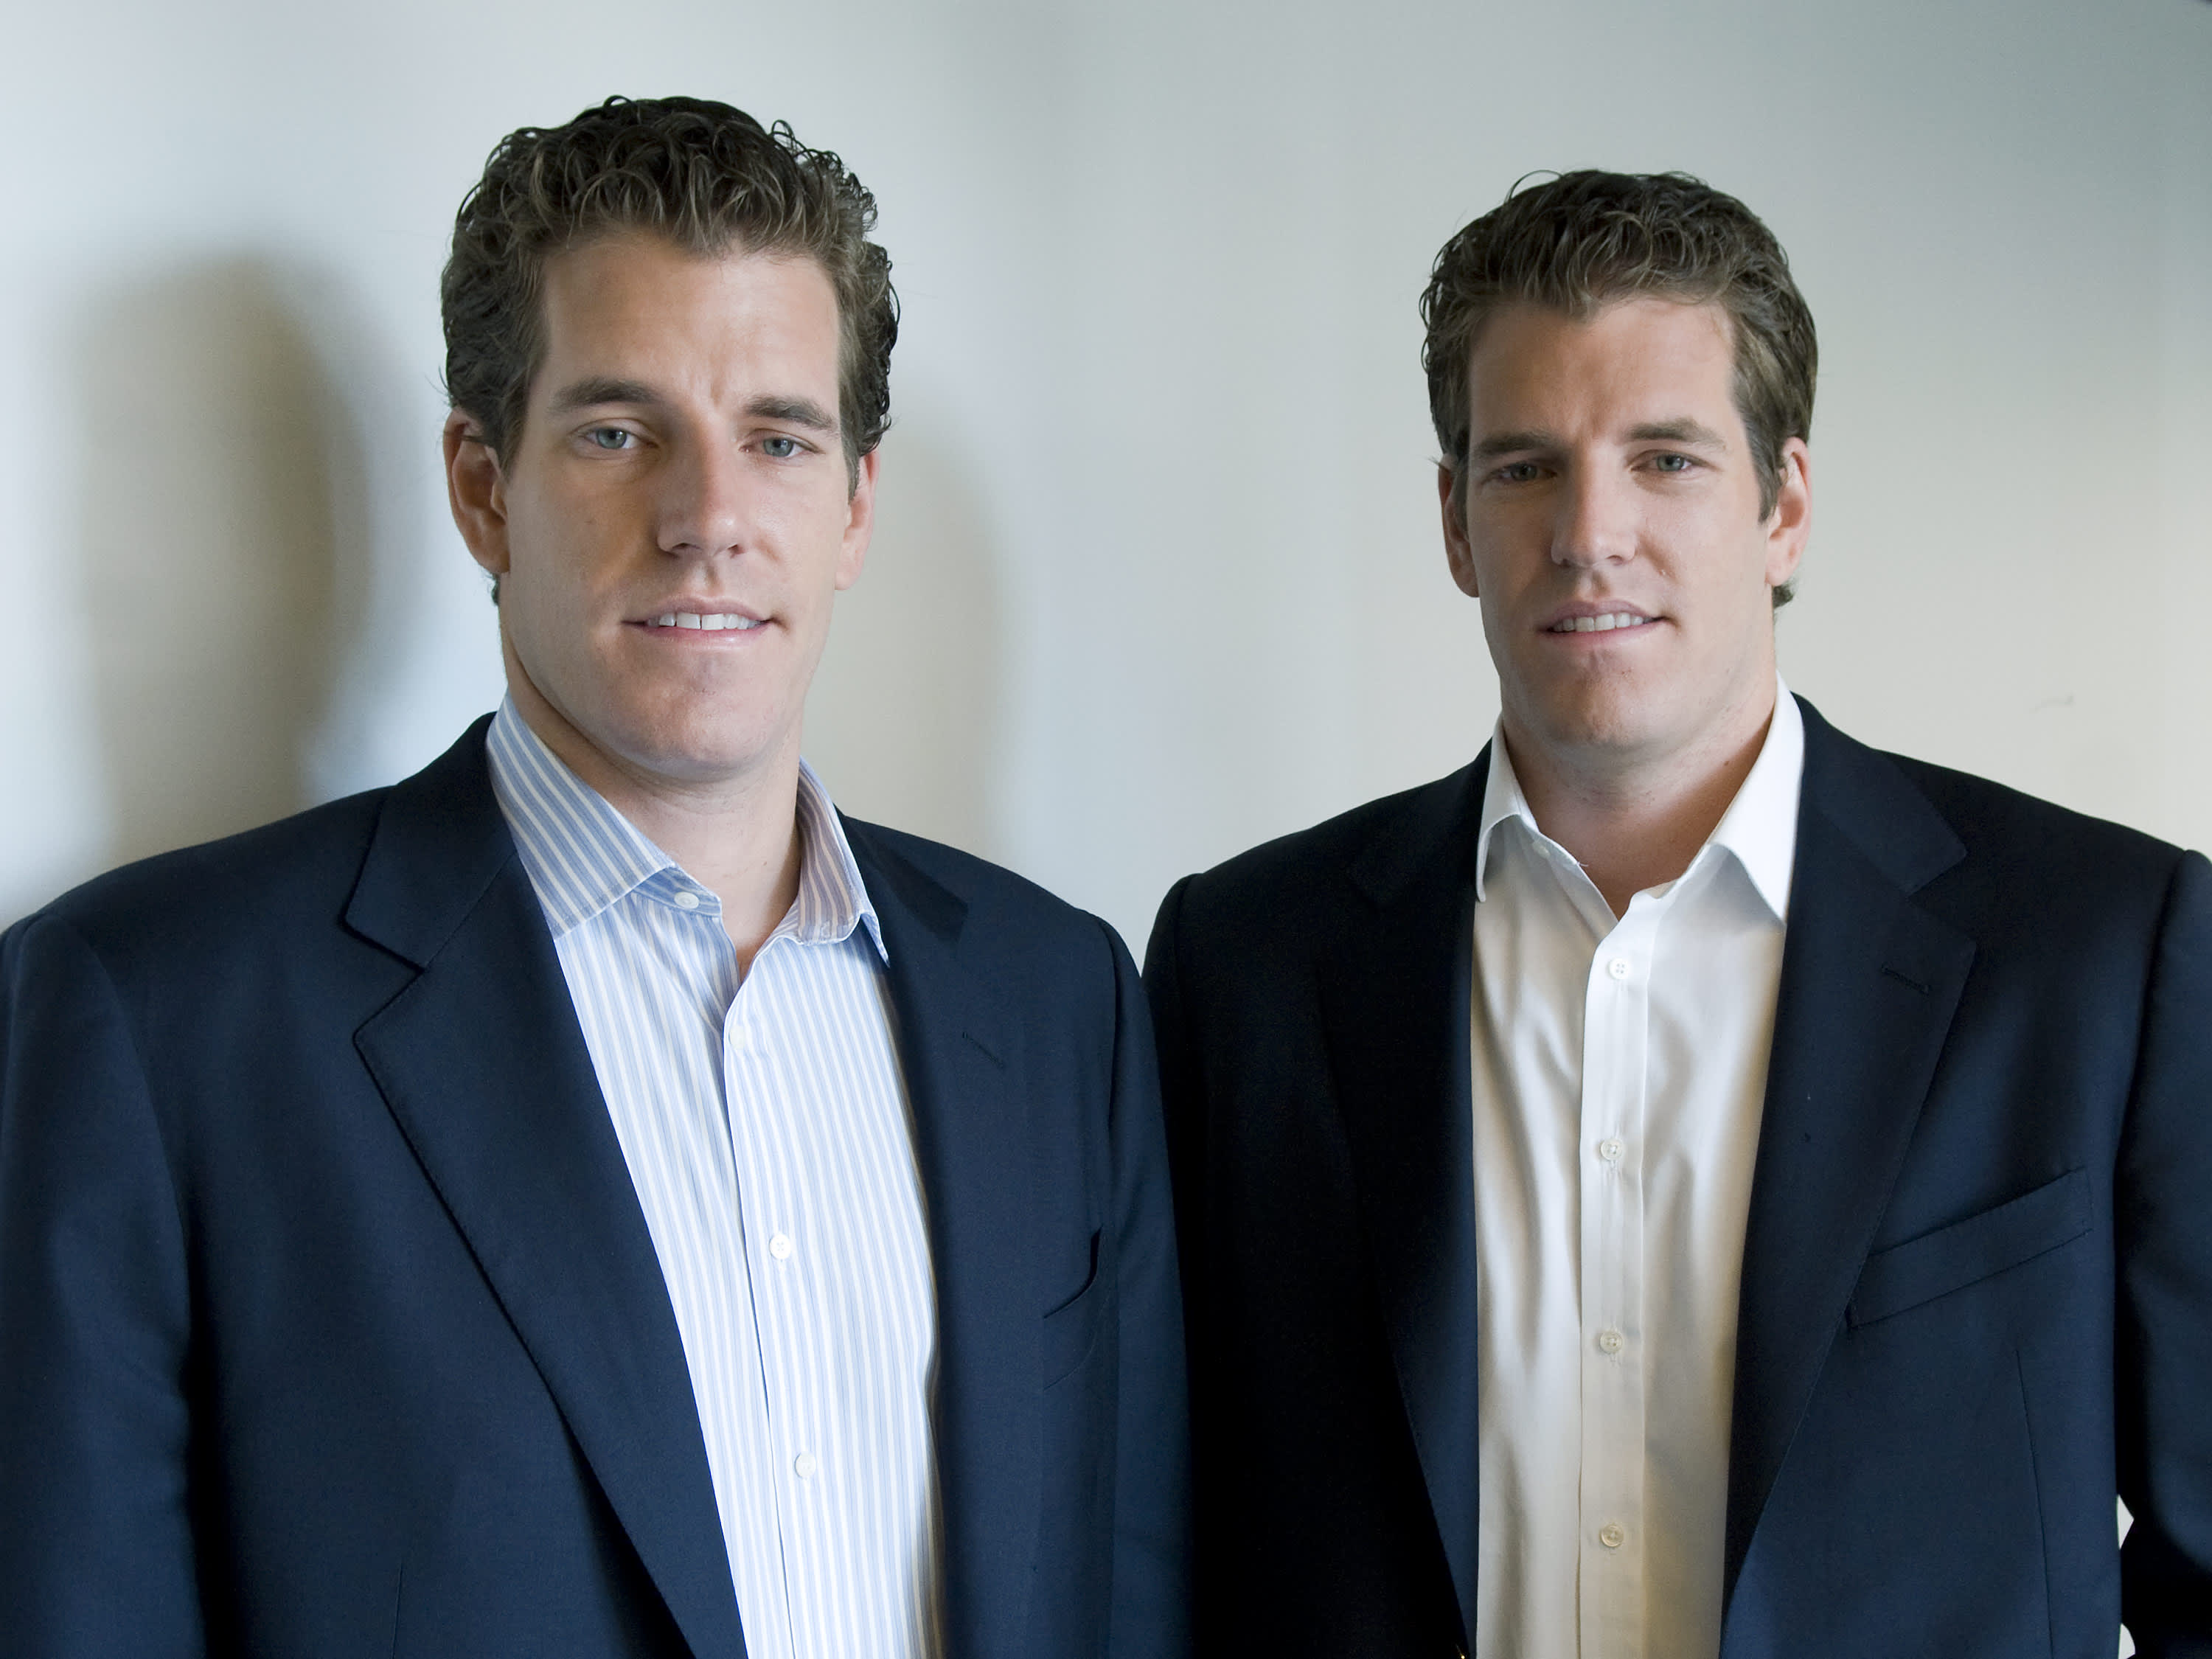 Zuckerberg reportedly held talks with Winklevoss twins about Facebook's cryptocurrency plans